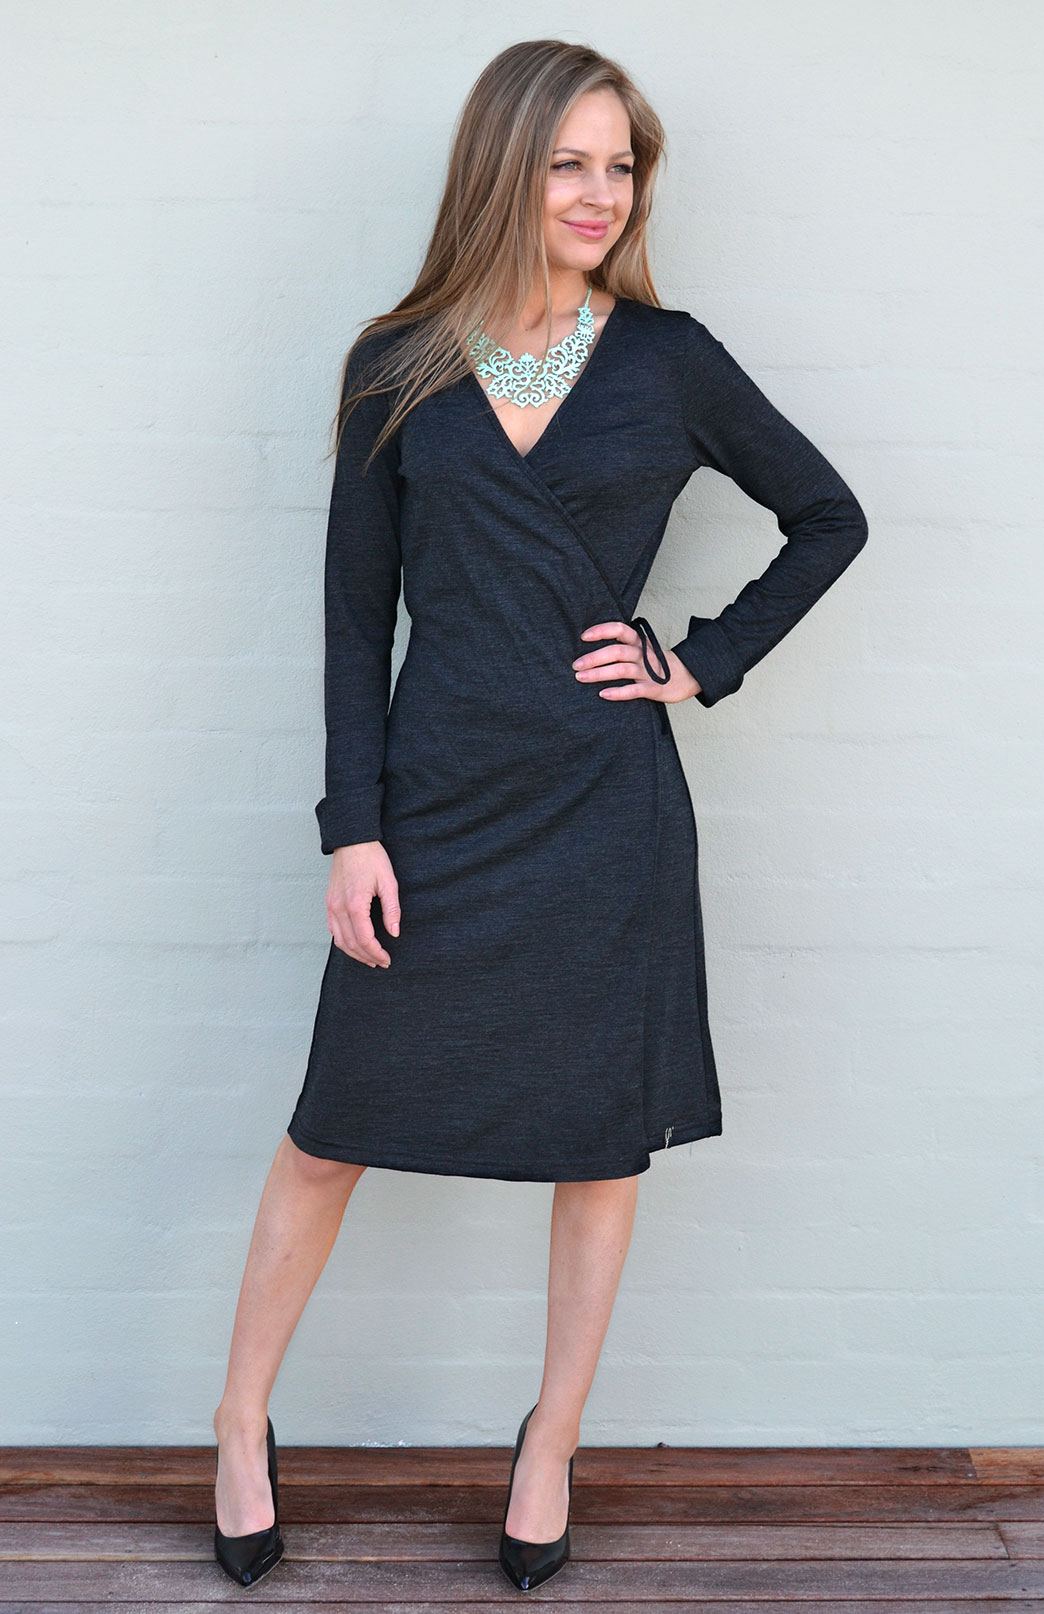 Long Sleeve Wrap Dress - Women's Charcoal Merino Wool Long Sleeve Wrap Party Dress - Smitten Merino Tasmania Australia